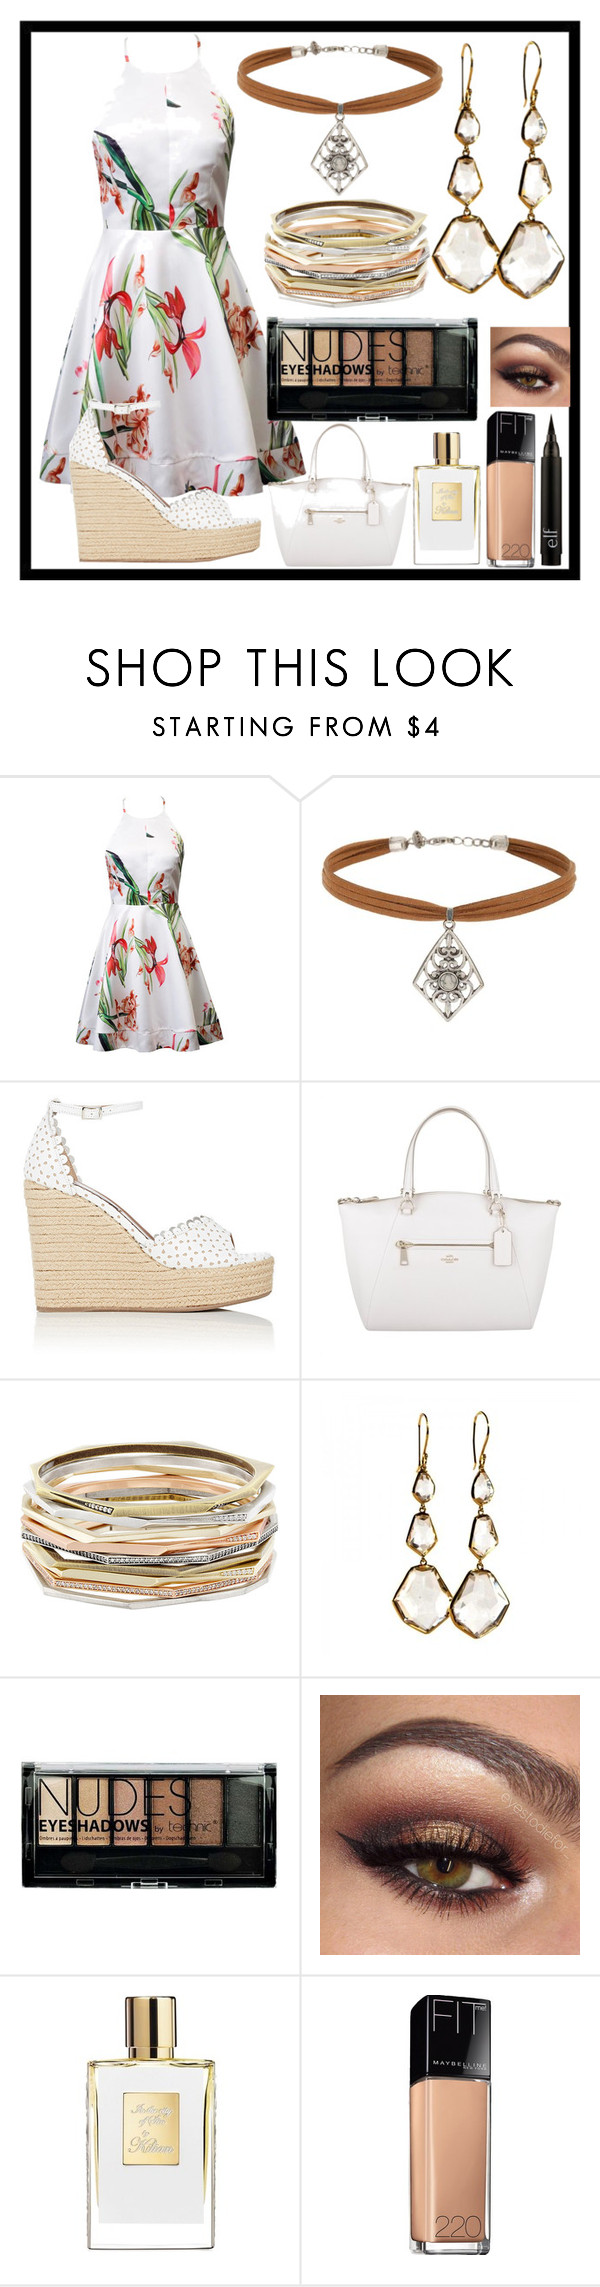 """Stay beautiful"" by malrocks2003 ❤ liked on Polyvore featuring Miss Selfridge, Tabitha Simmons, Coach, Kendra Scott, Ippolita, Boohoo and Maybelline"